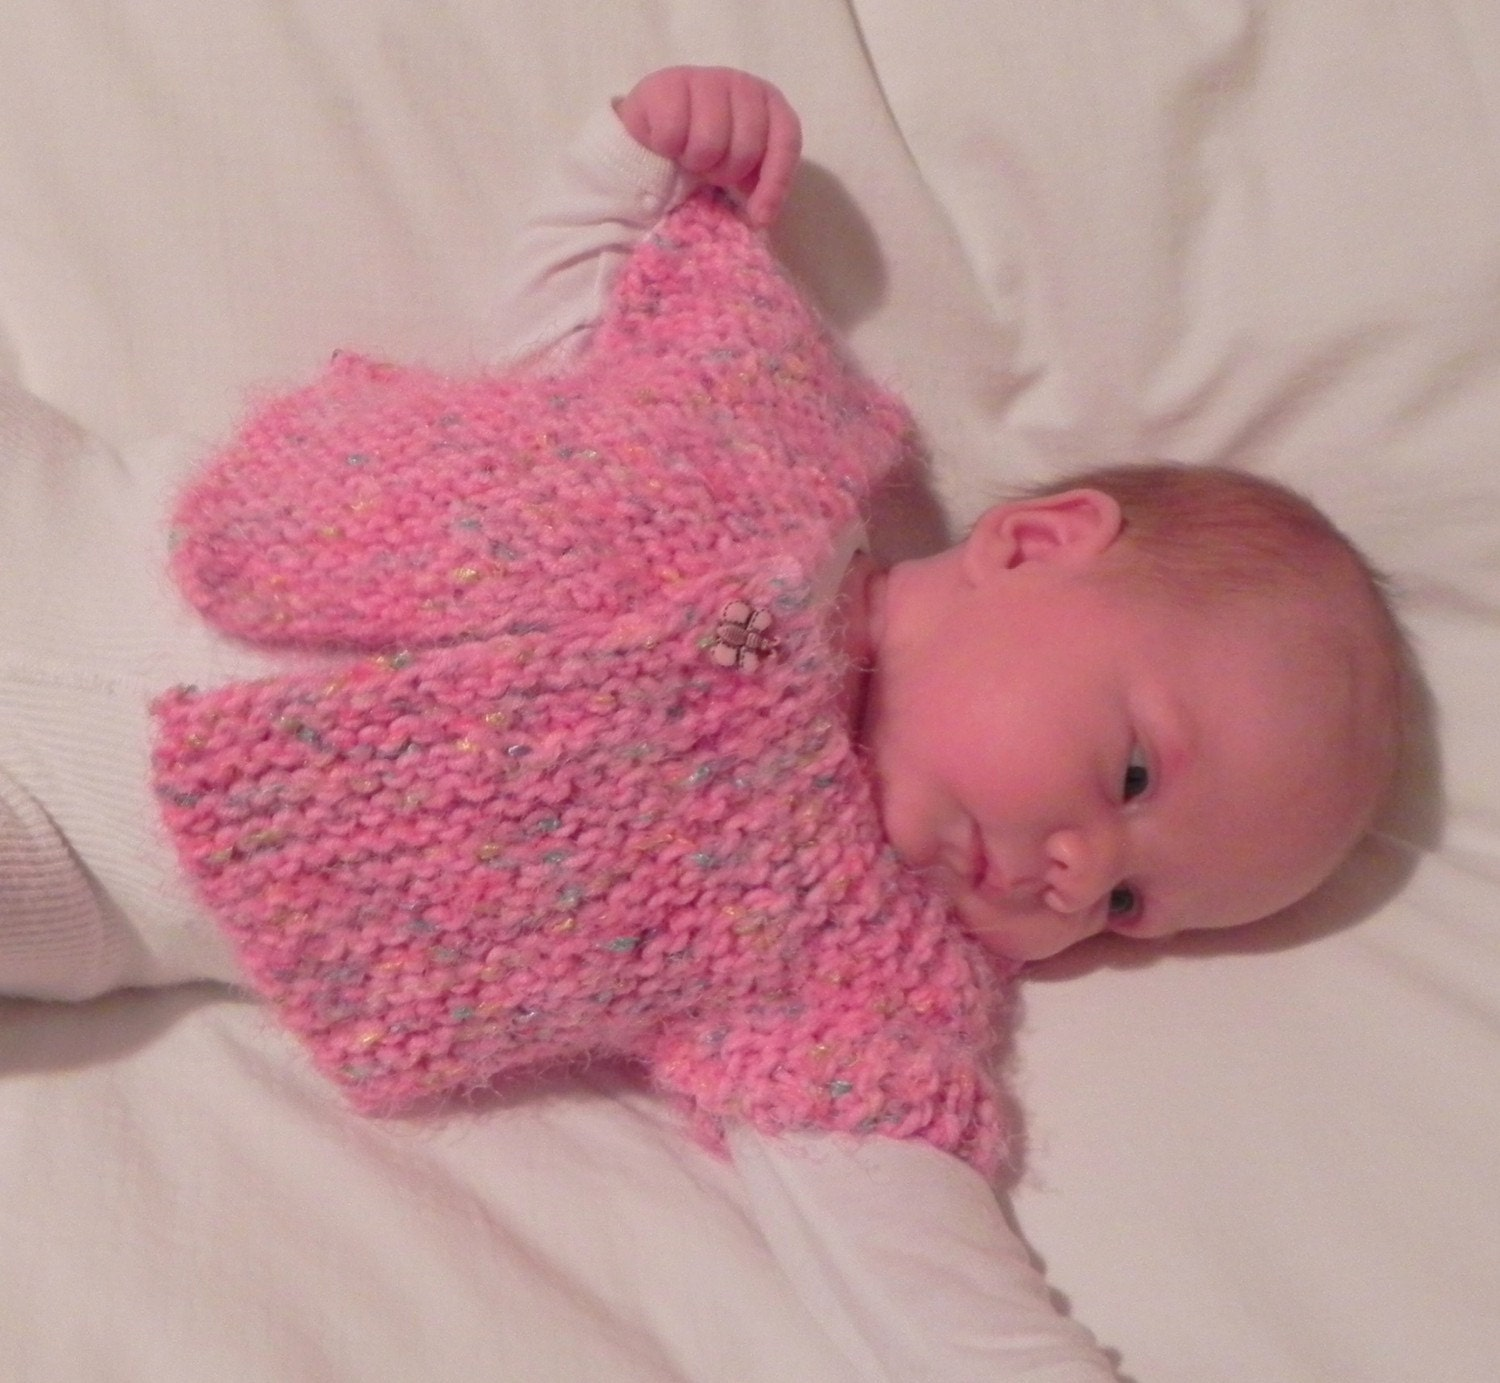 Knitting Pattern For Baby Capelet : French Angel Capelet Baby Sweater Knitting by MadameSegneri